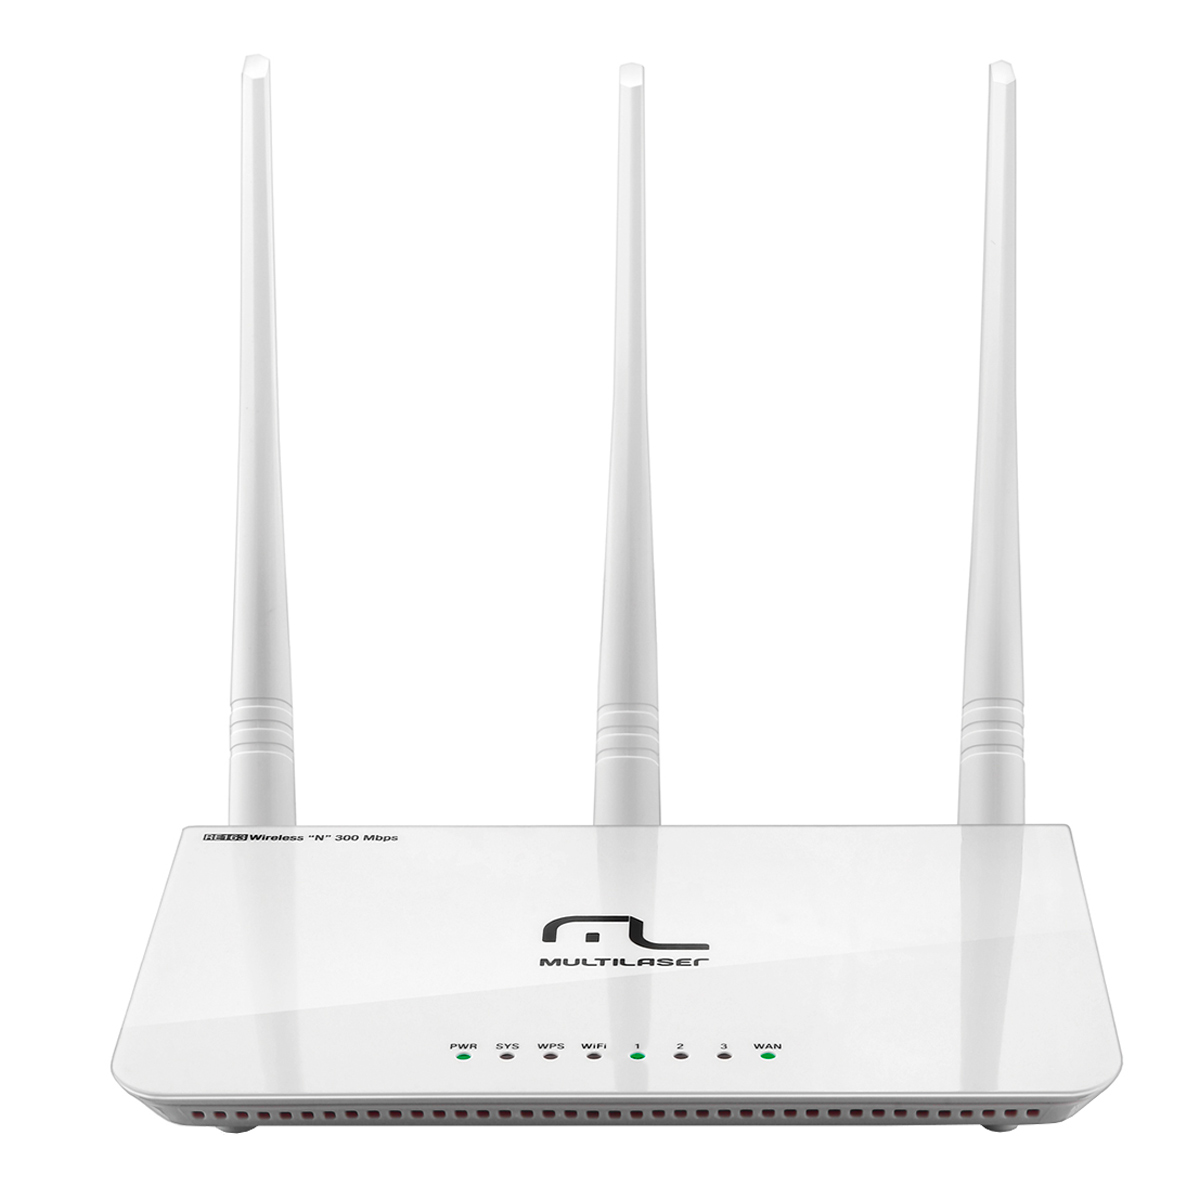 RE163 - Roteador Wireless 300Mbps 3 Antenas Re 163 - Multilaser